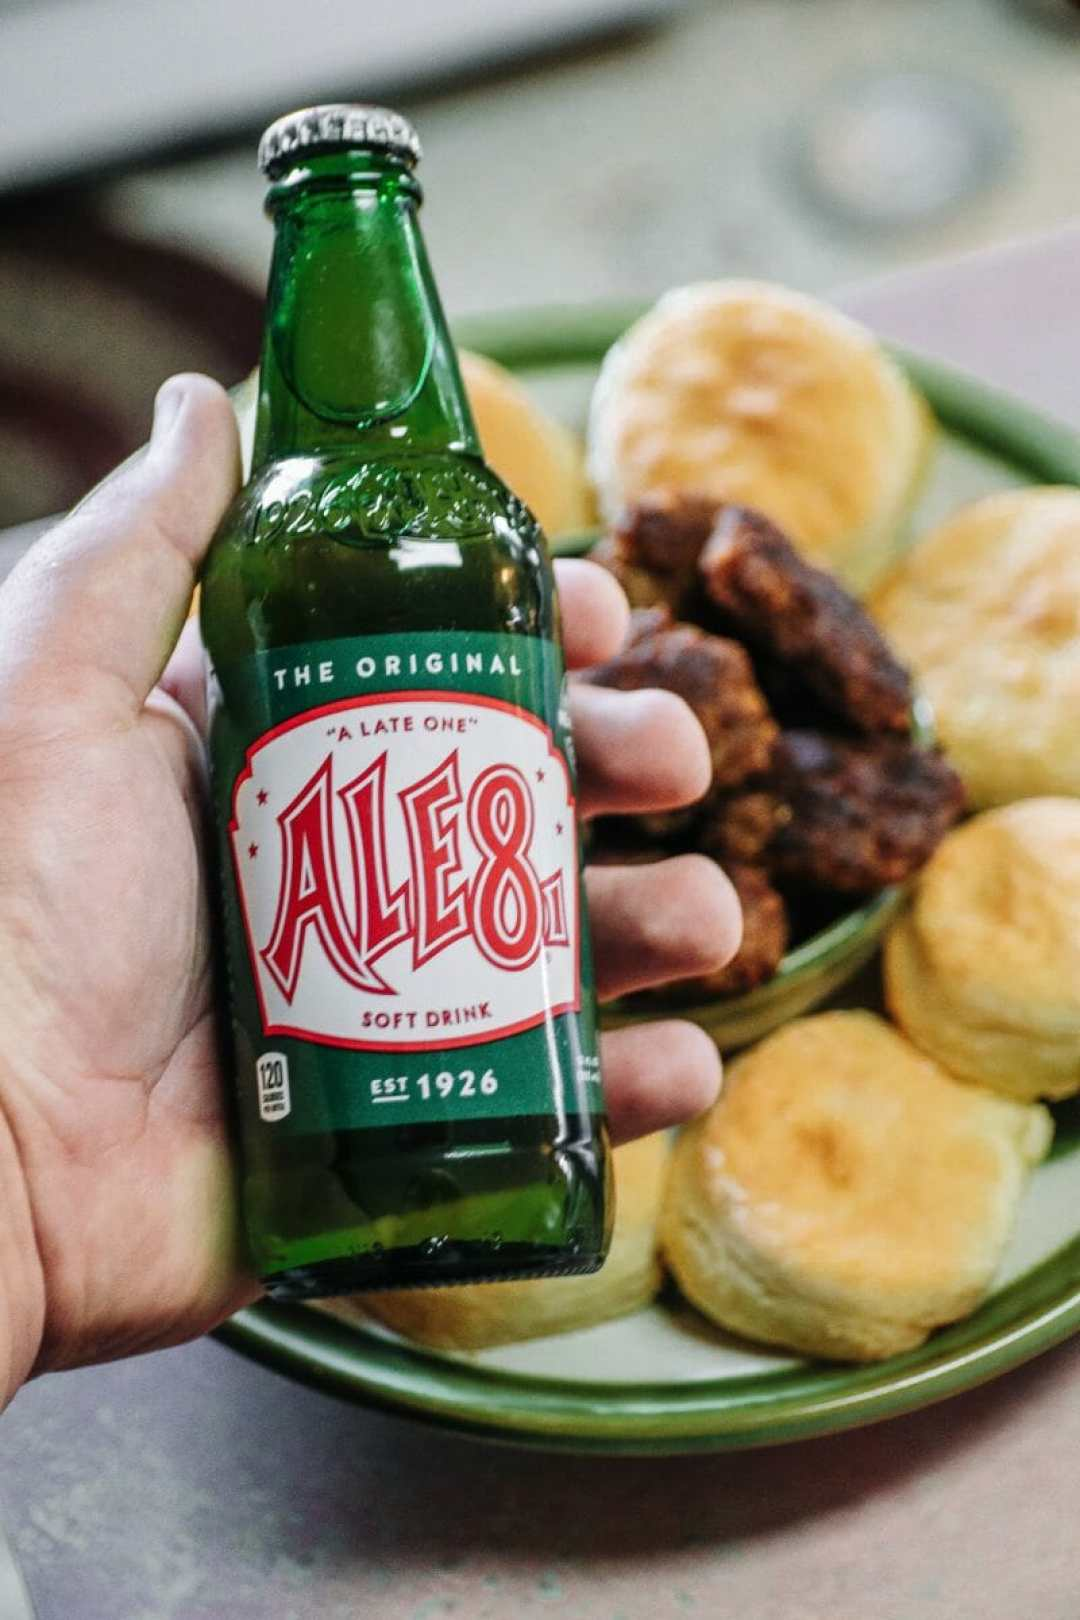 Ale-8-One Buttery Biscuit Recipe: Southern Biscuit Recipe Using Soda by JCP Eats/JC Phelps